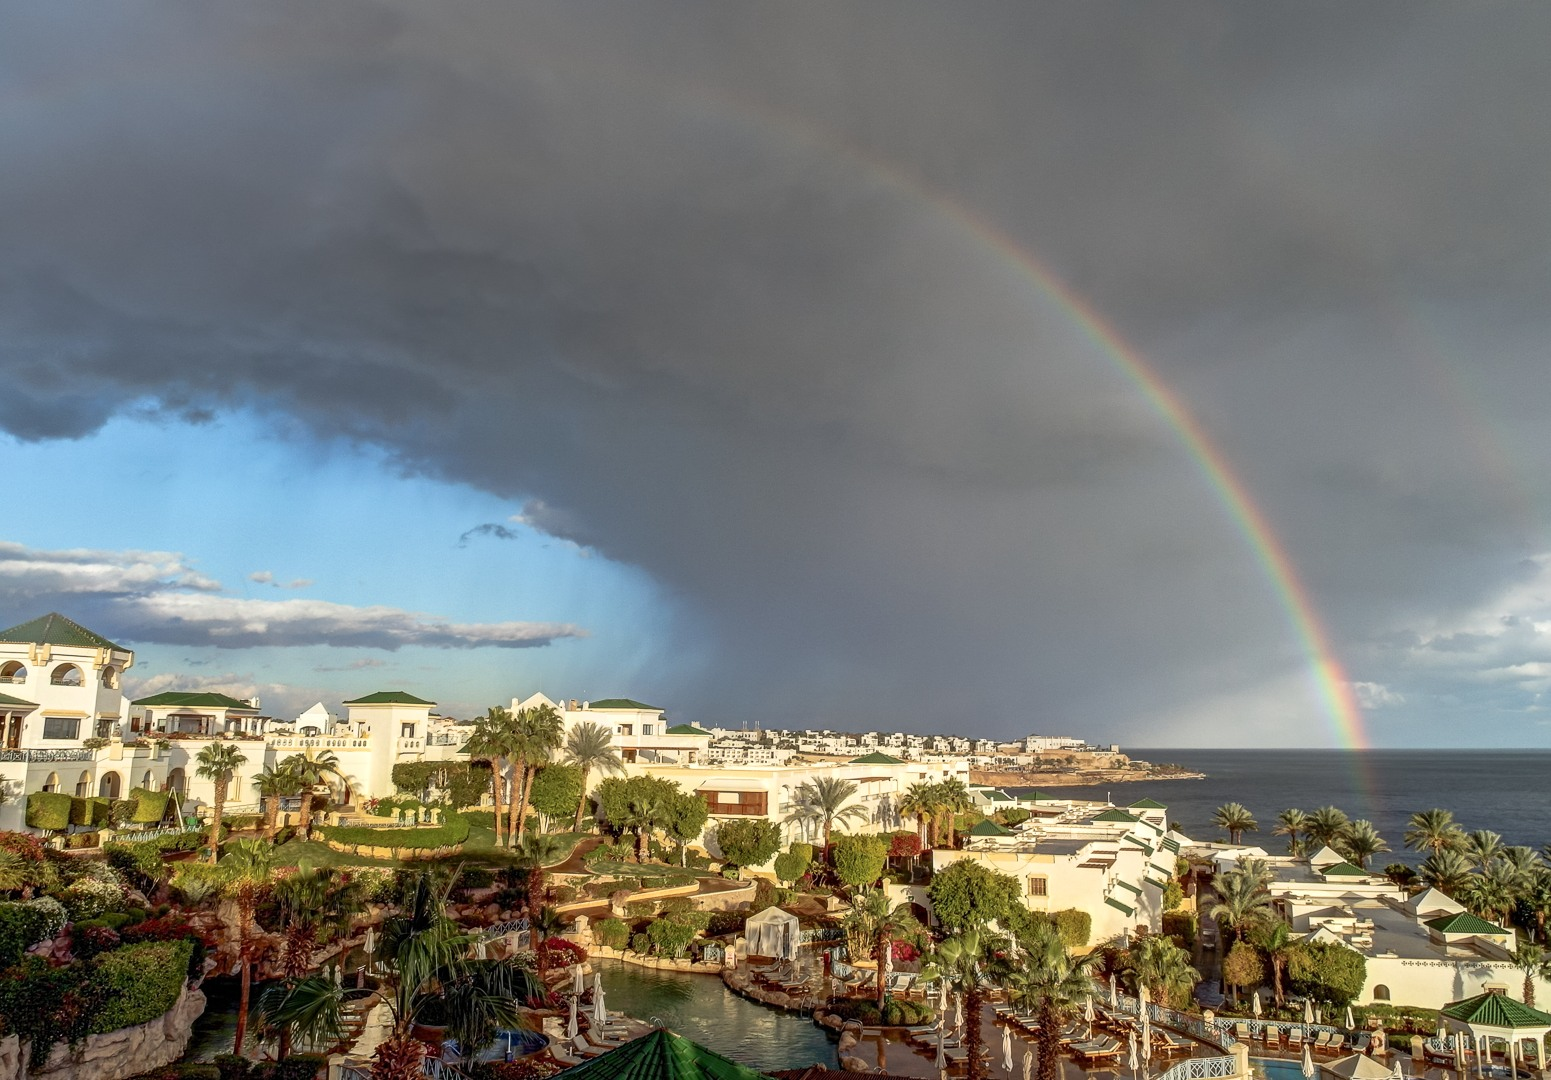 Rainbow over Sharm El Sheikh.